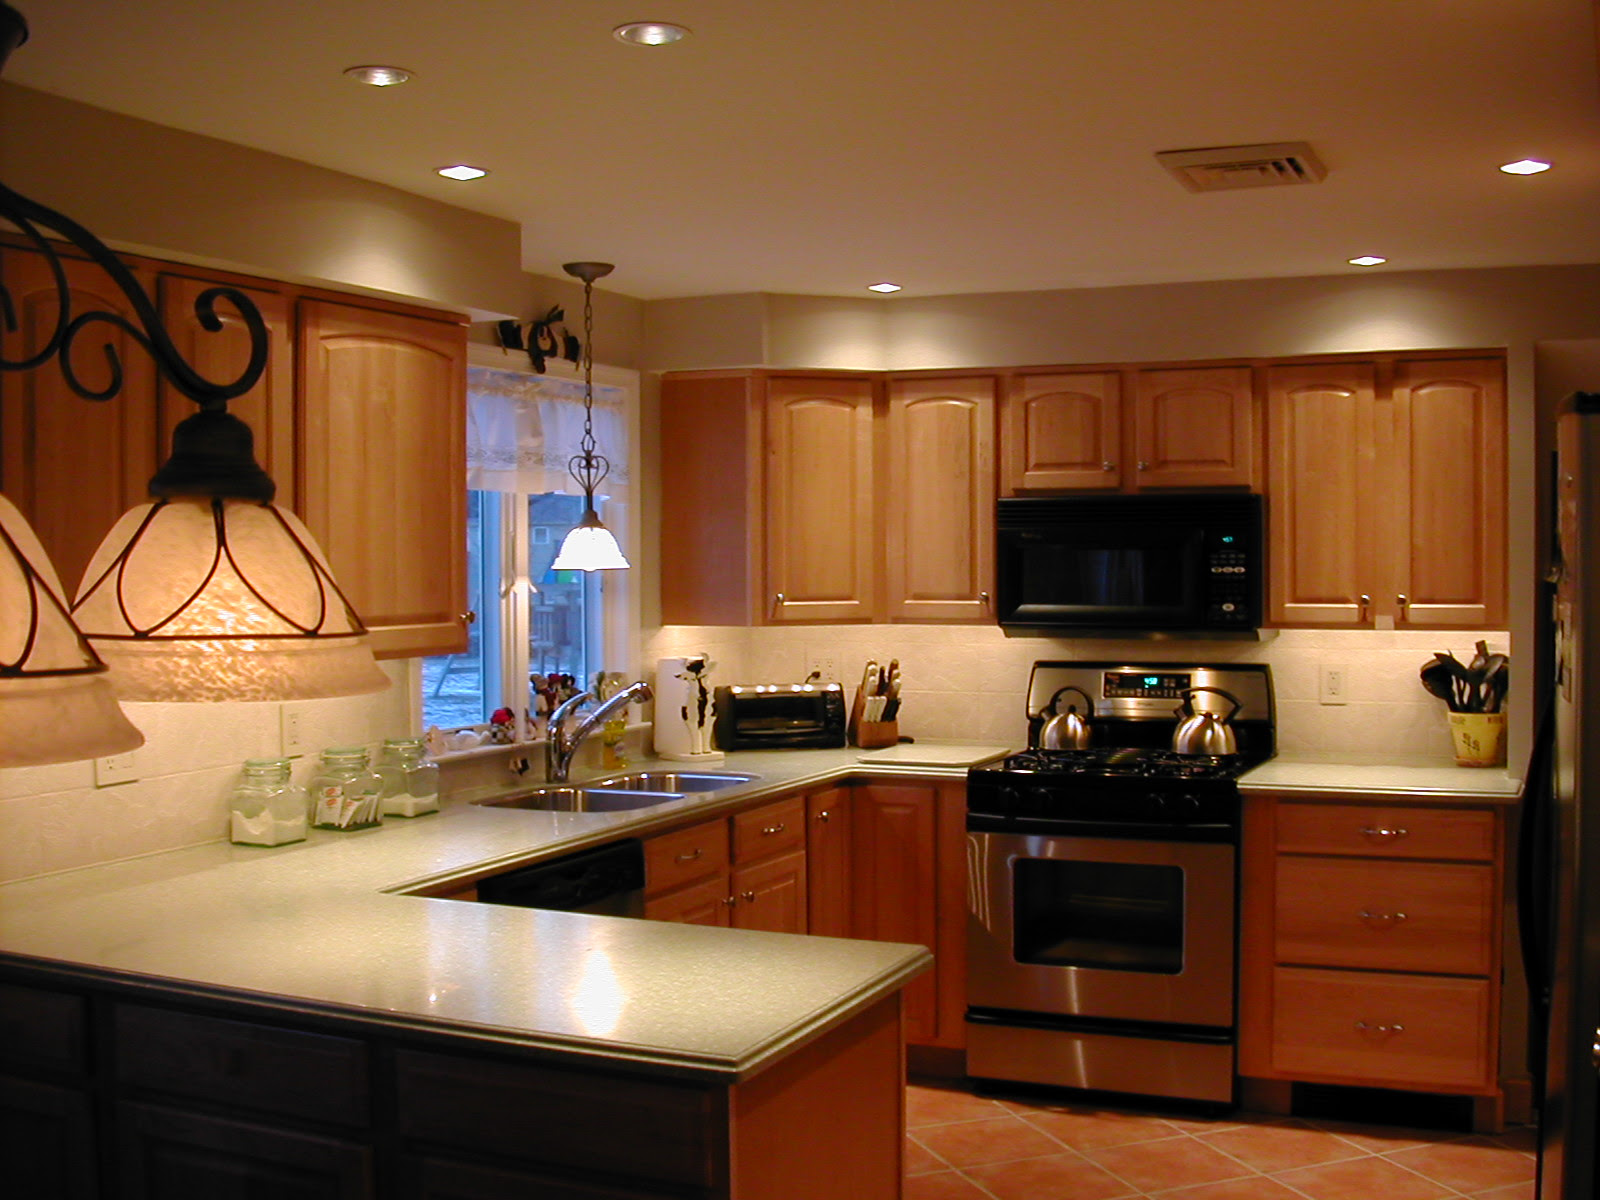 Kitchen Lighting Design Pictures & Photos